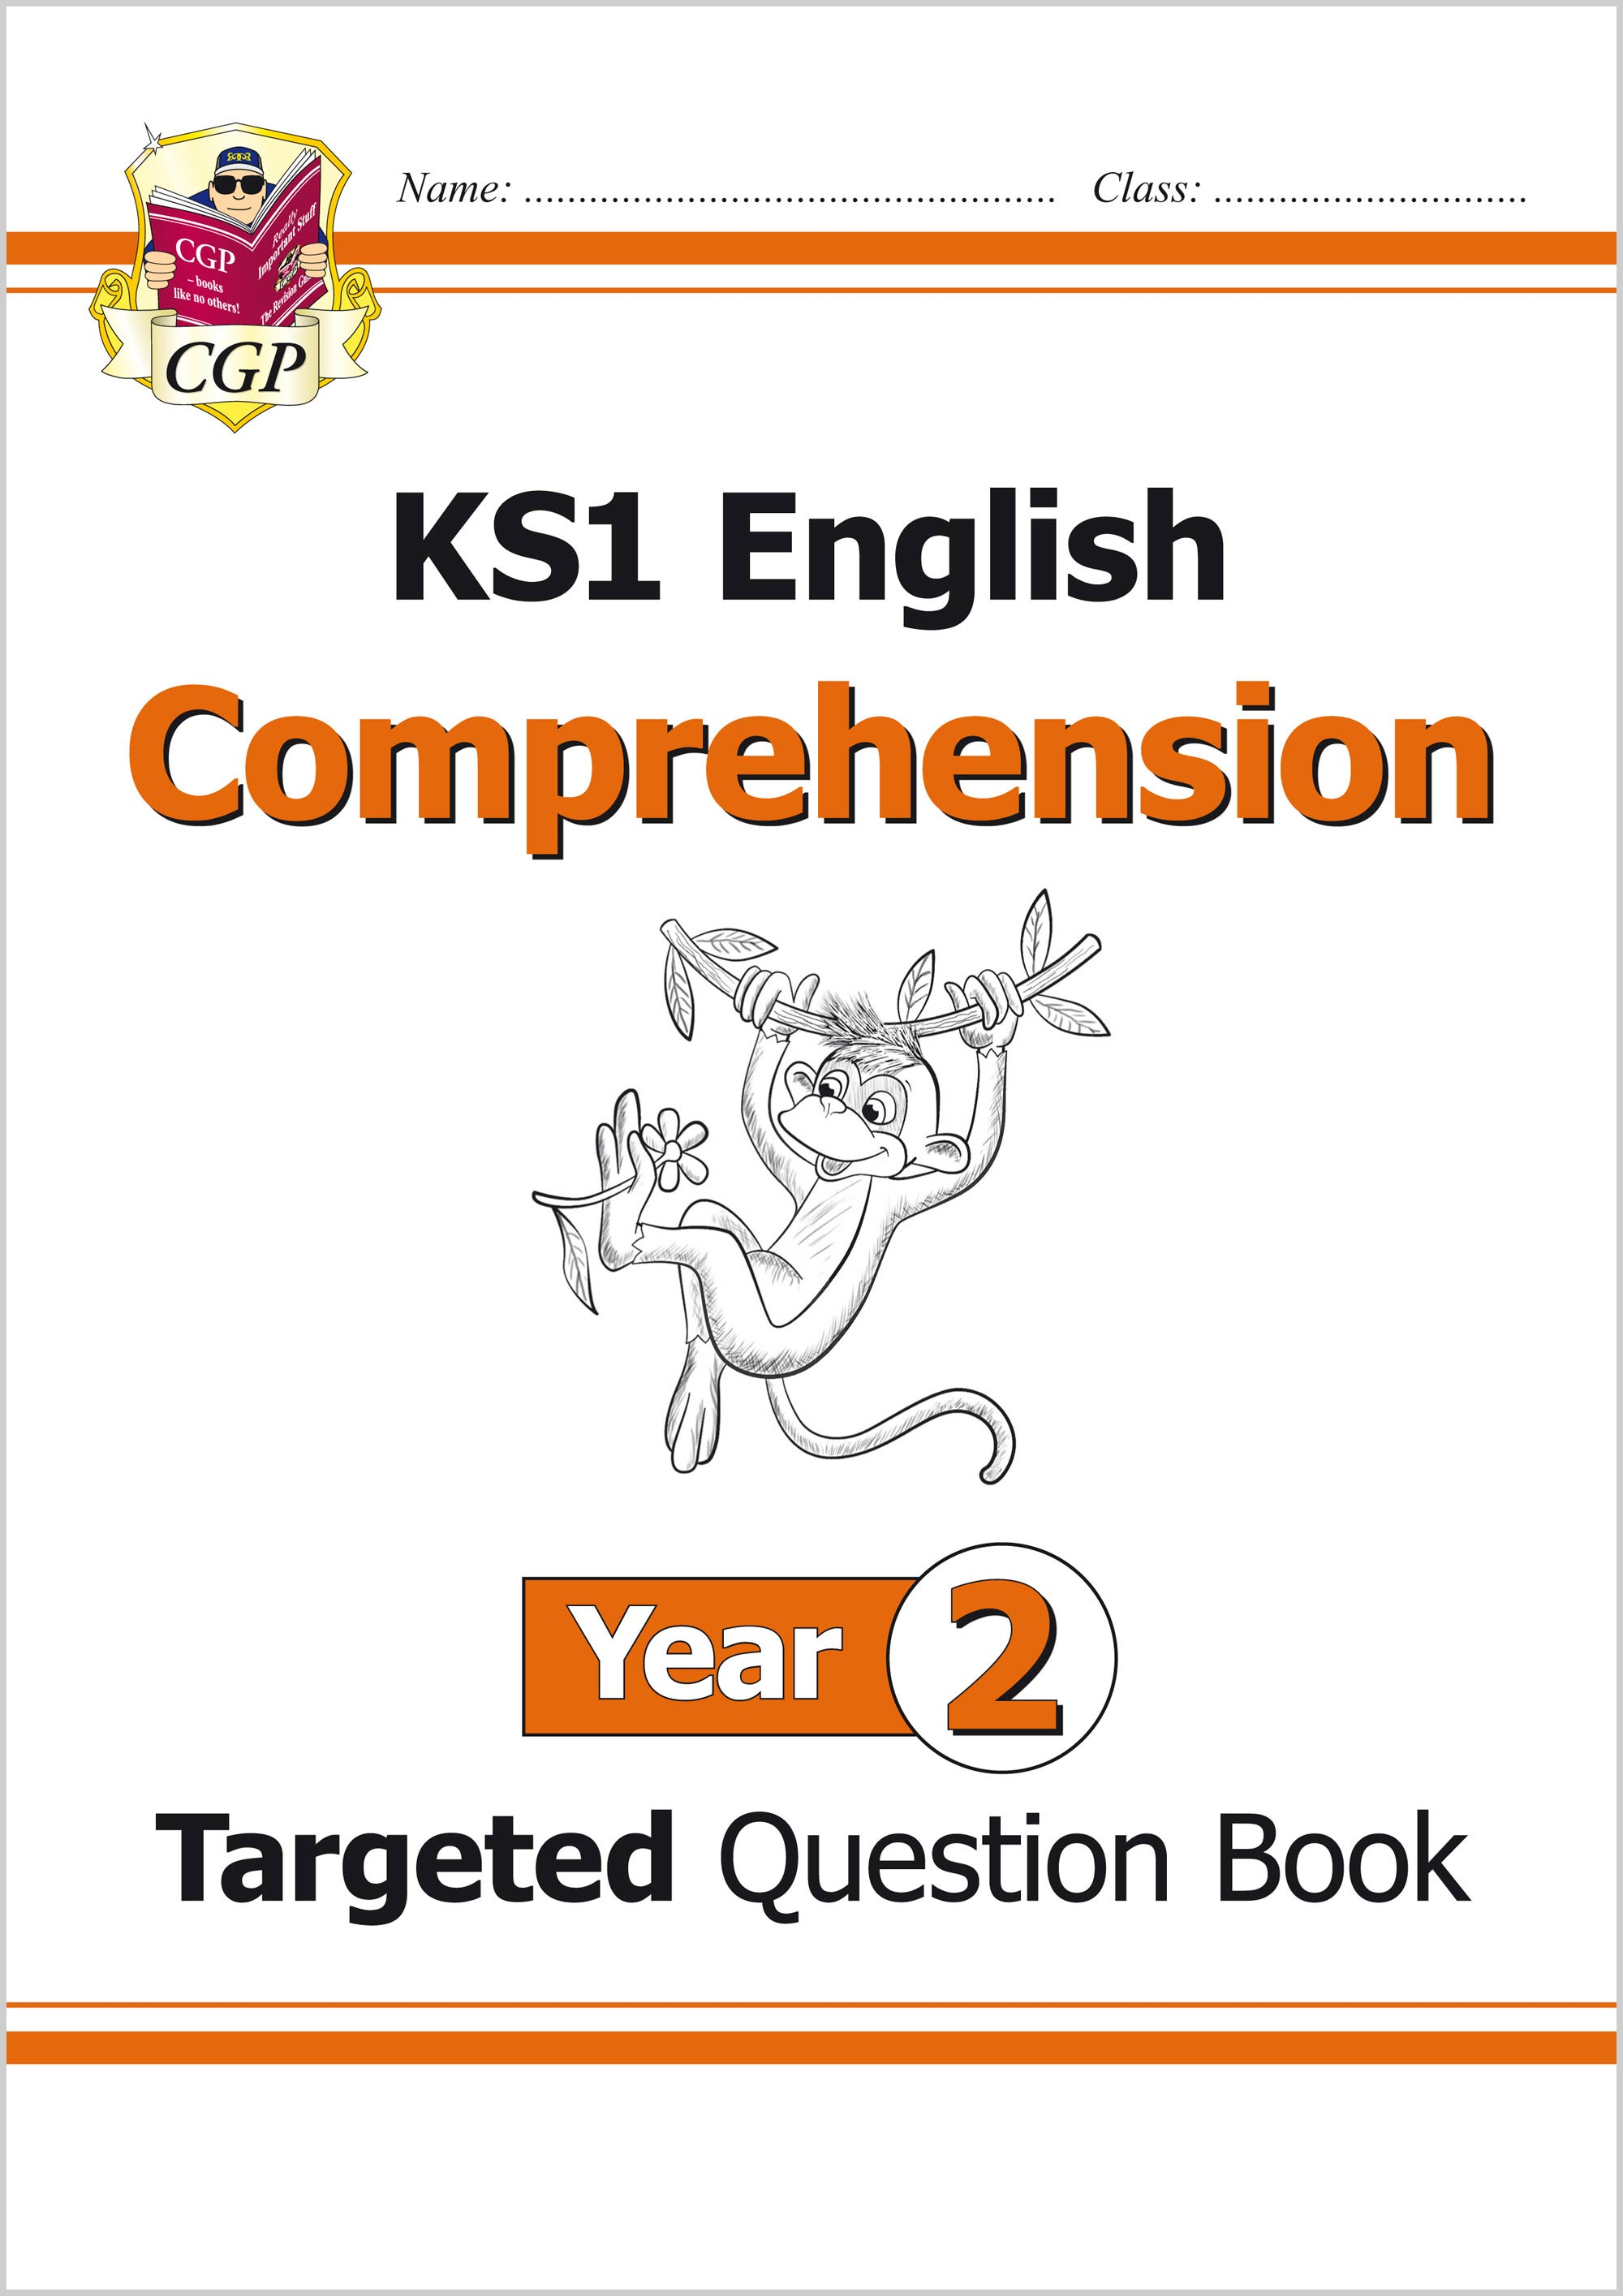 E2CW11 - KS1 English Targeted Question Book: Comprehension - Year 2